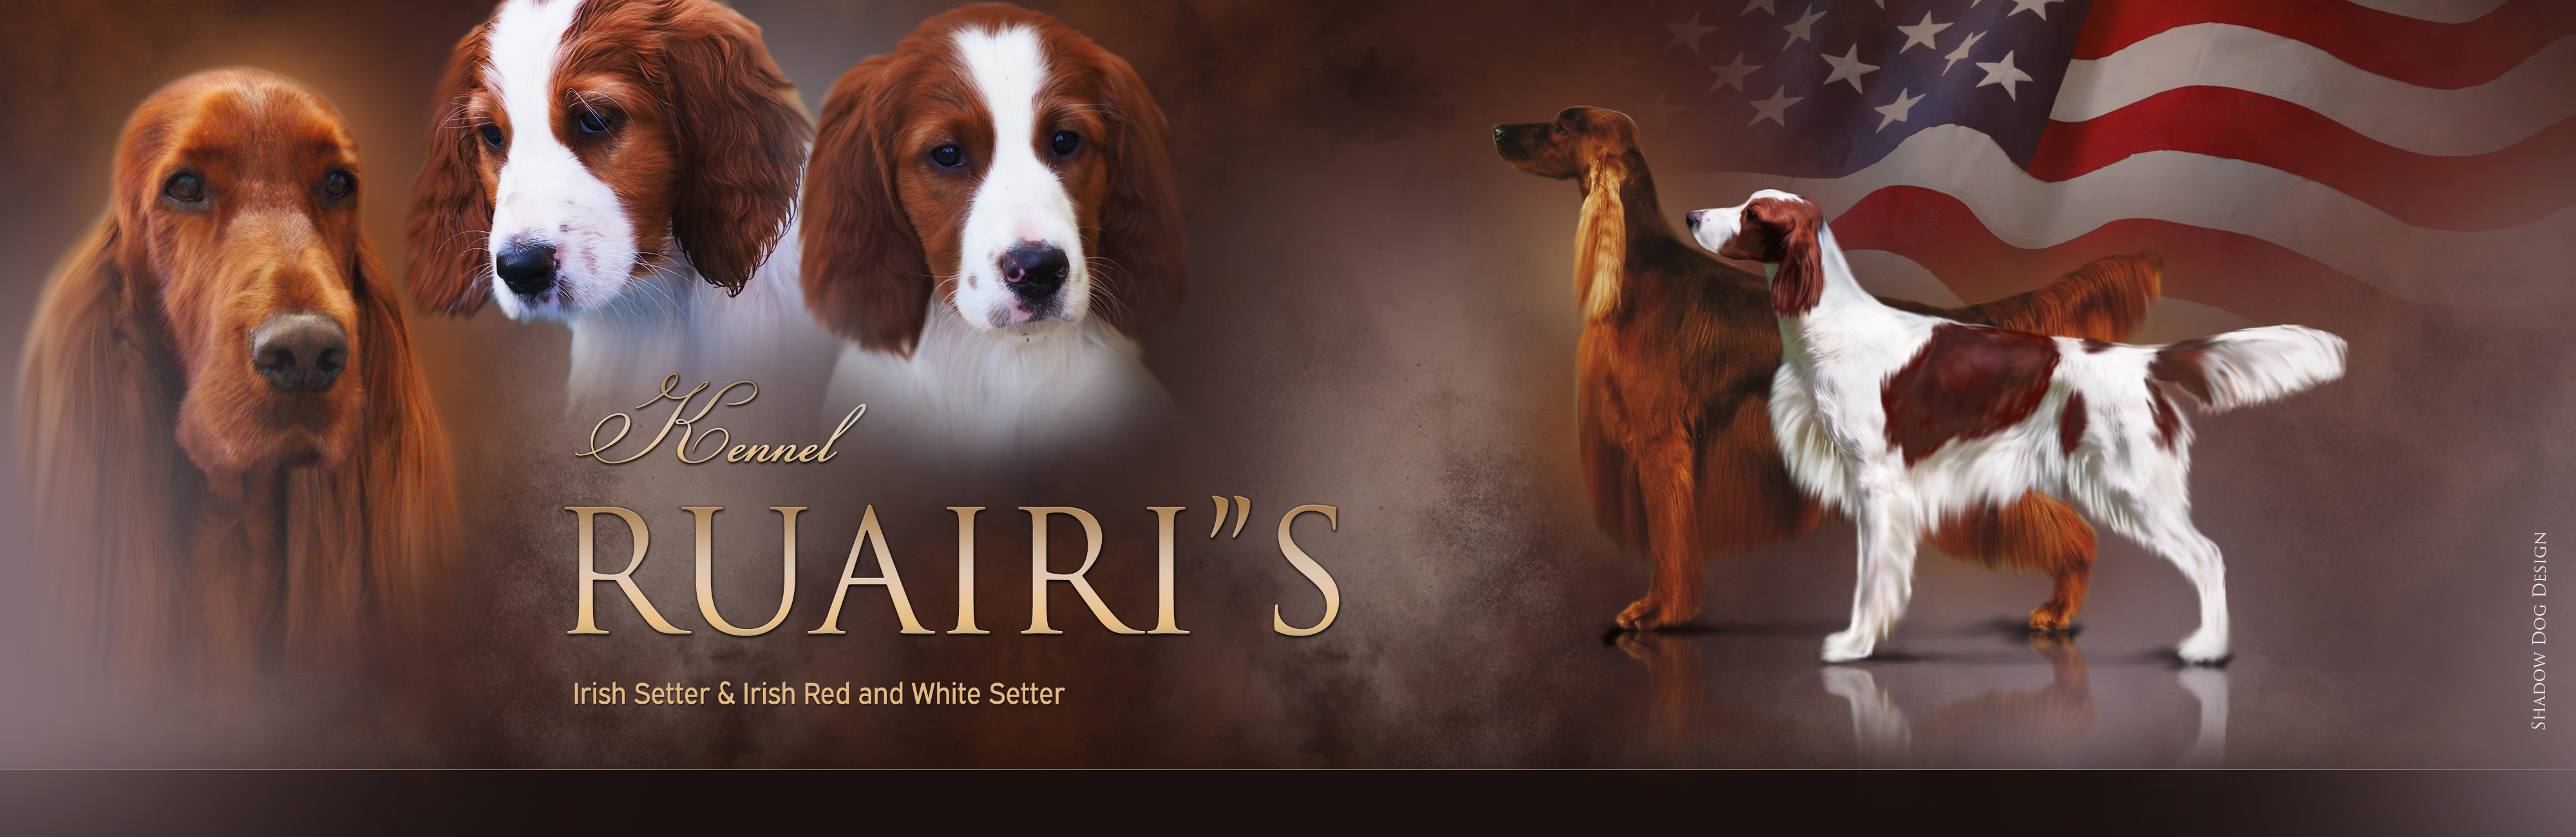 Ruairi's Irish Setter & Irish Red And White Setter